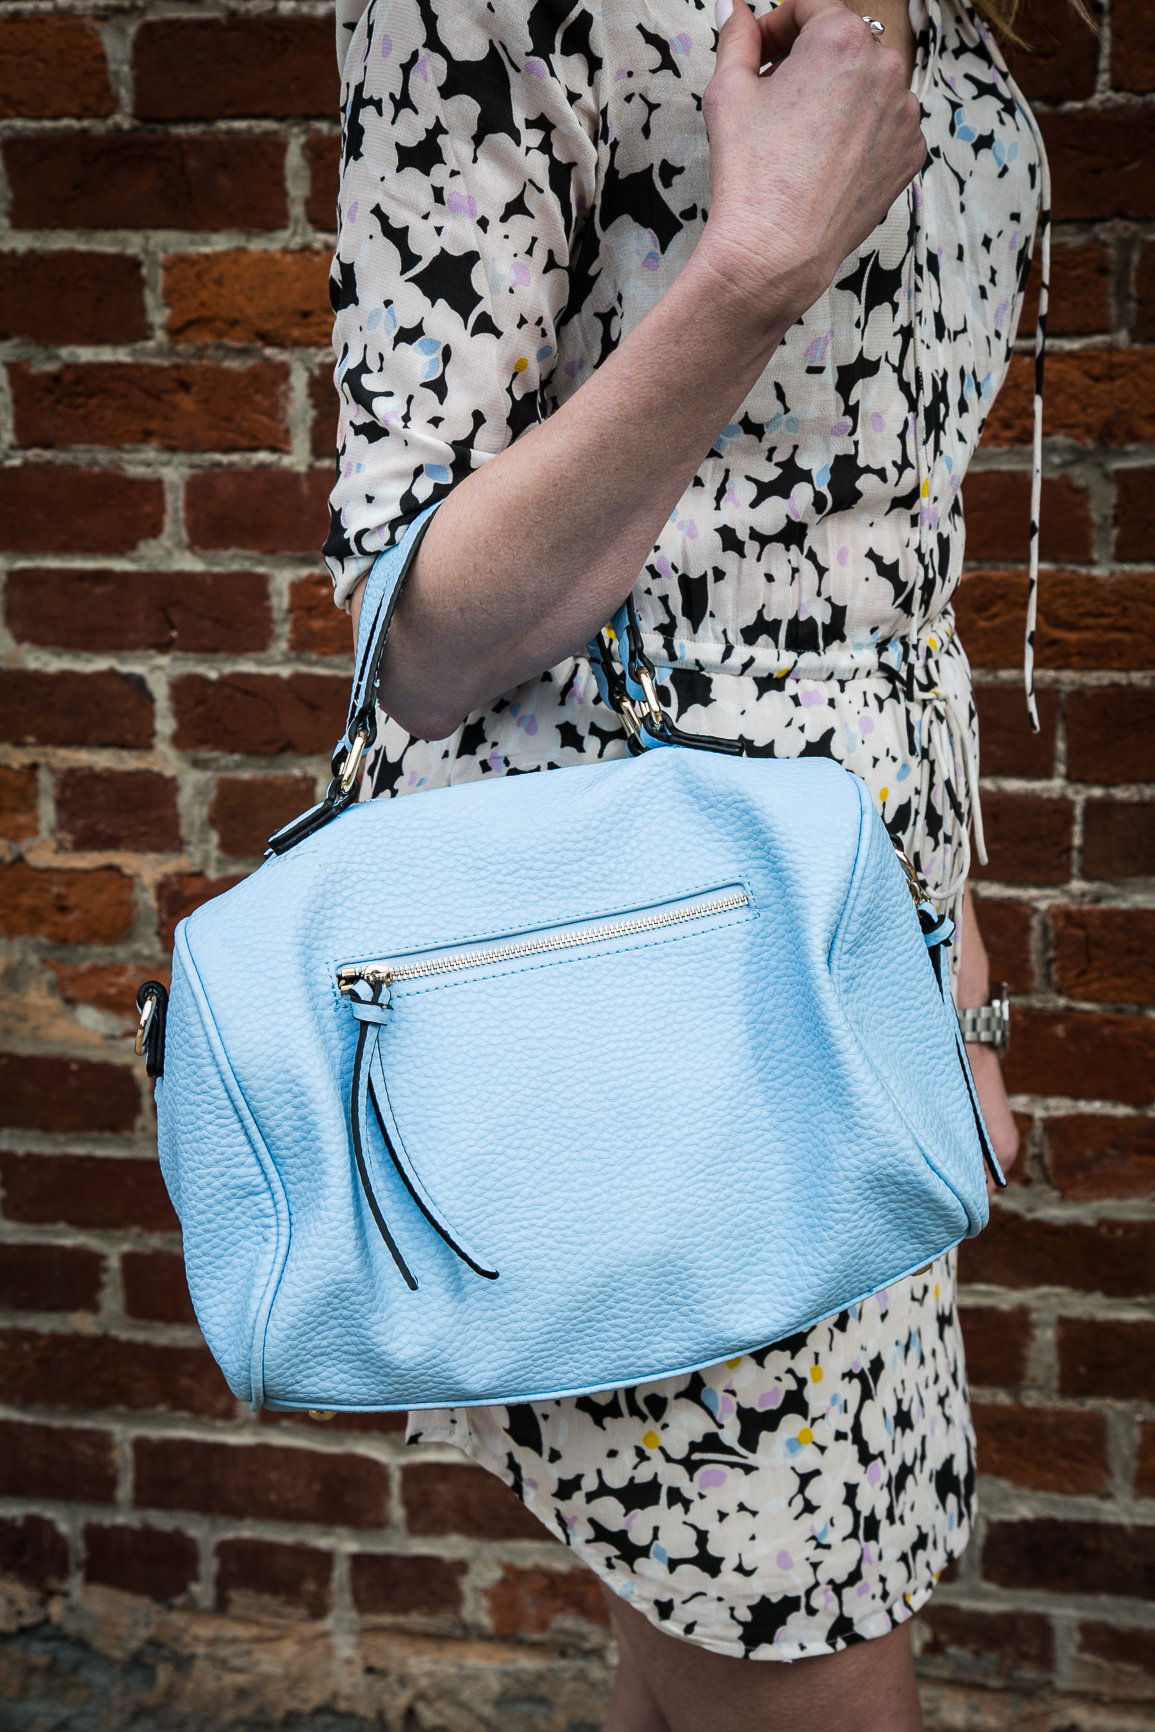 Stitch Fix Handbag by www.whitecottagehomeandliving.com Wish-0578-MLFH3.11